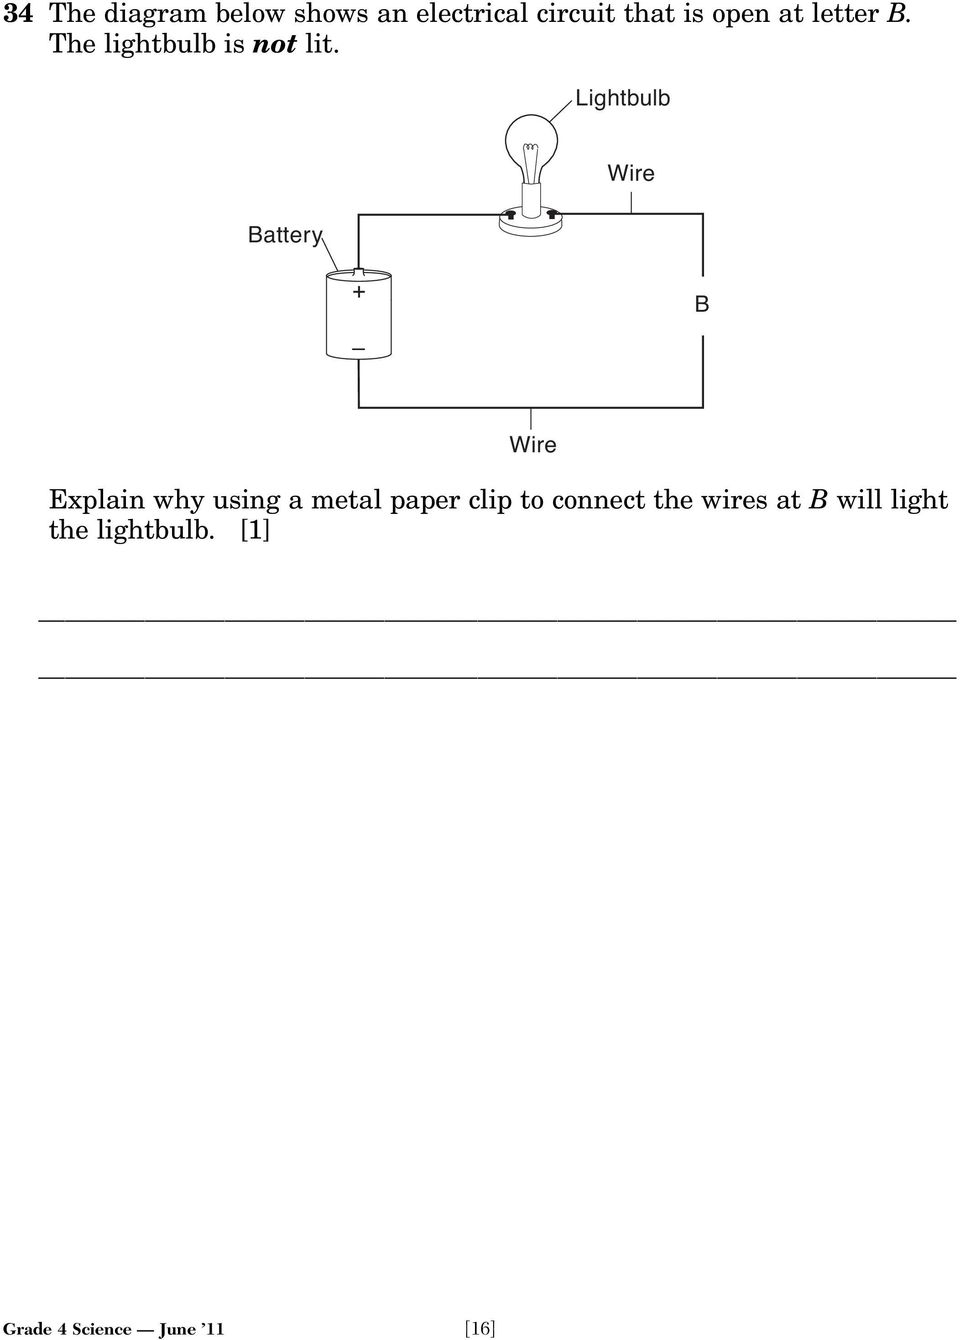 medium resolution of lightbulb battery wire b wire explain why using a metal paper